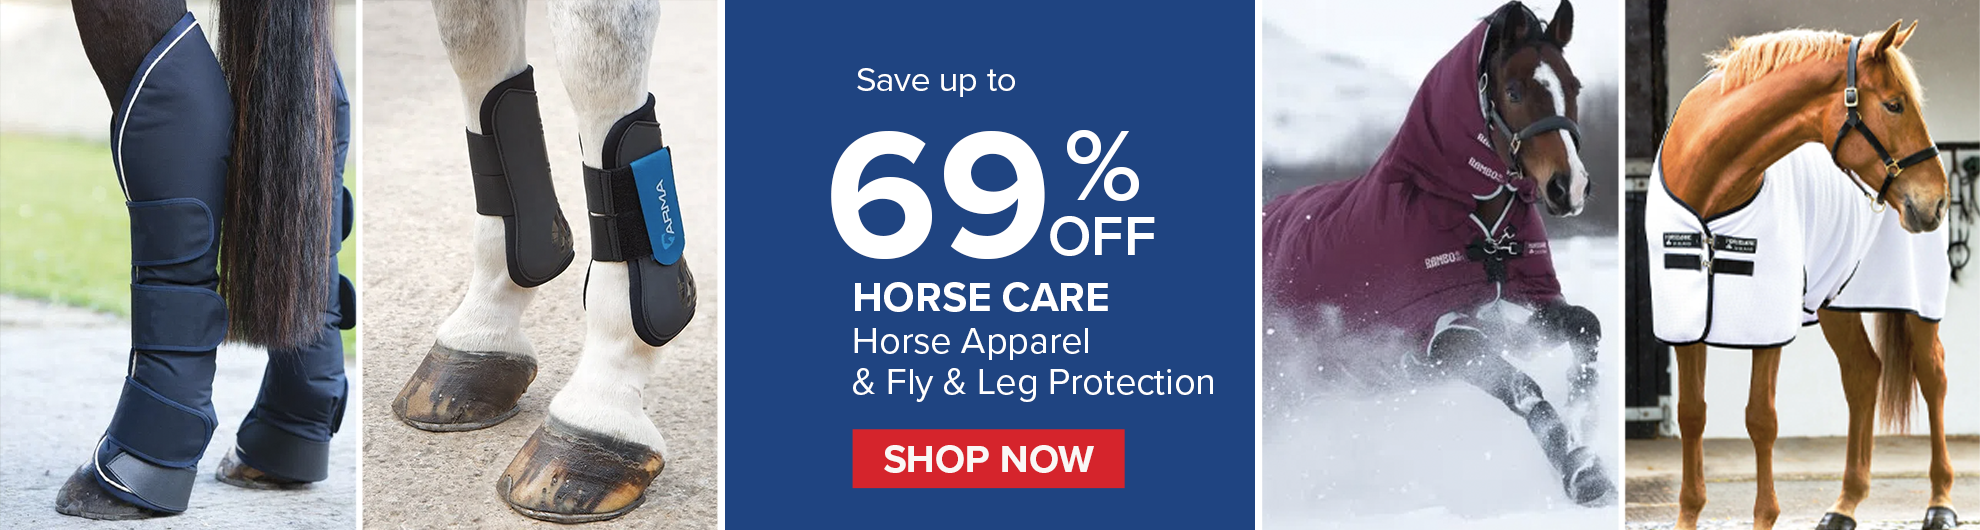 Buy Horse Care Products on Bit of Britain